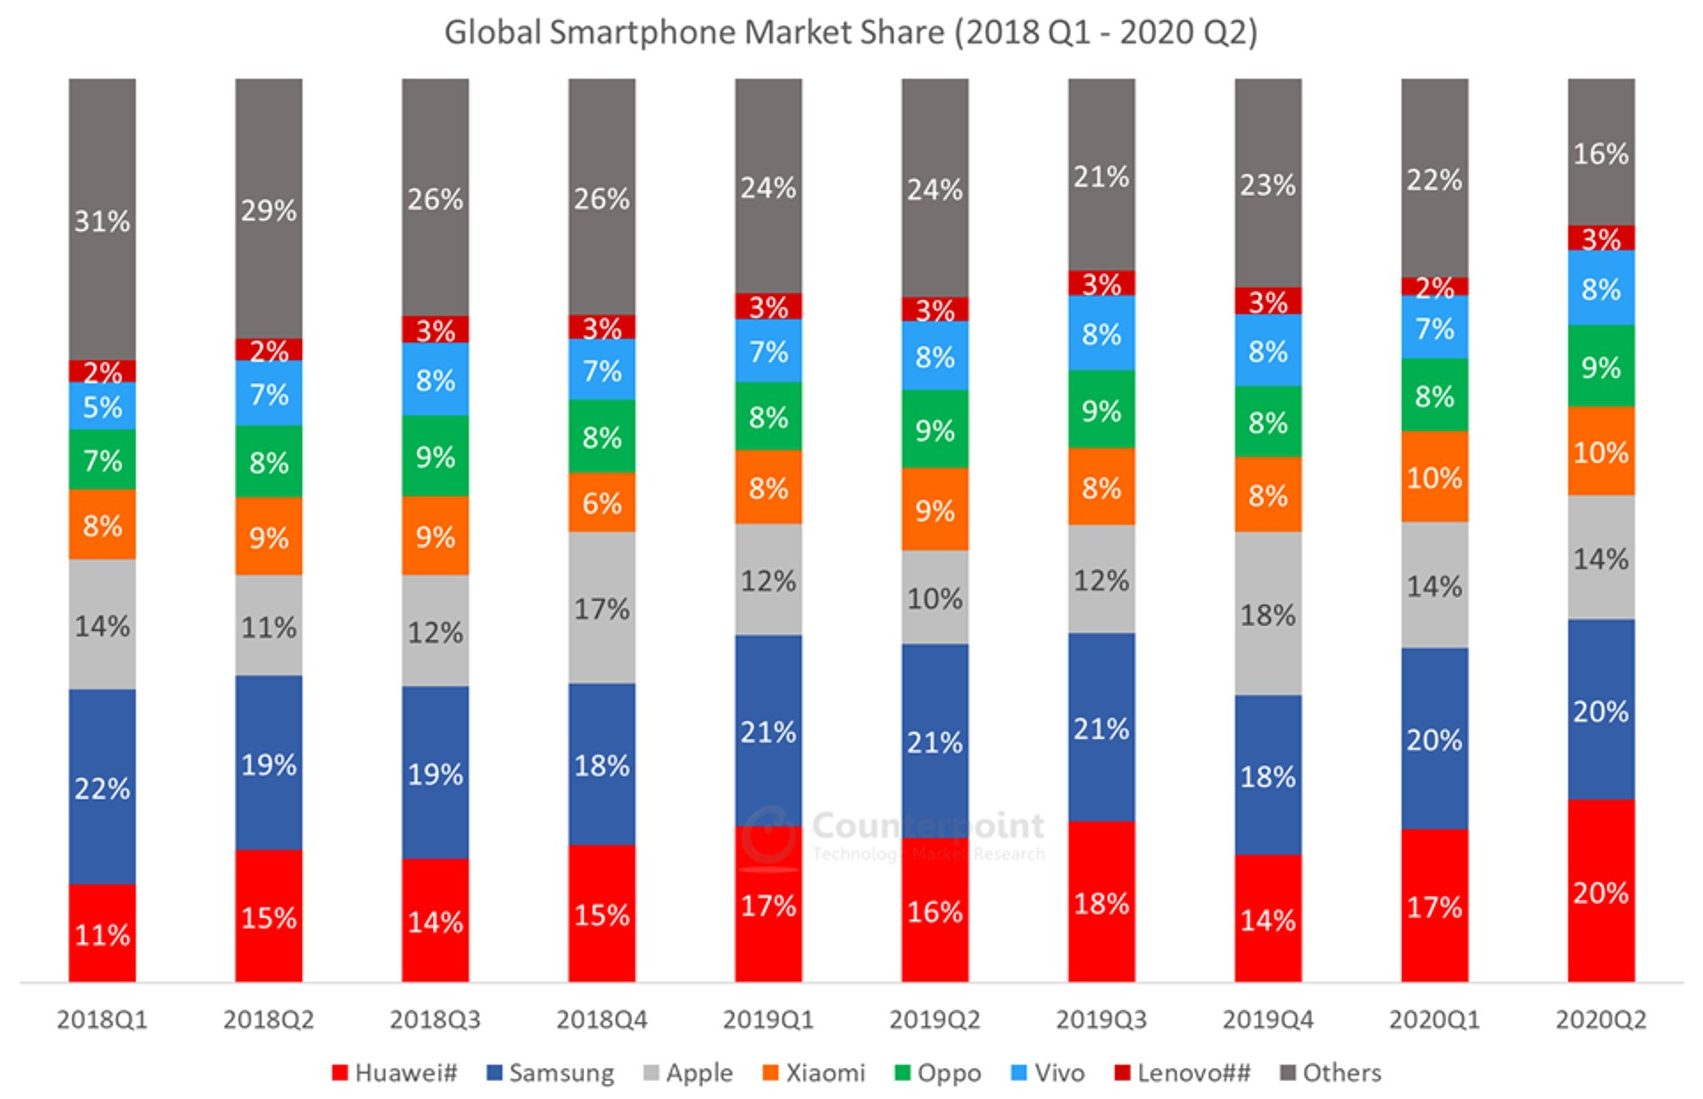 Counterpoint Global Smartphone Market Share Q1 2019 - Q2 2020